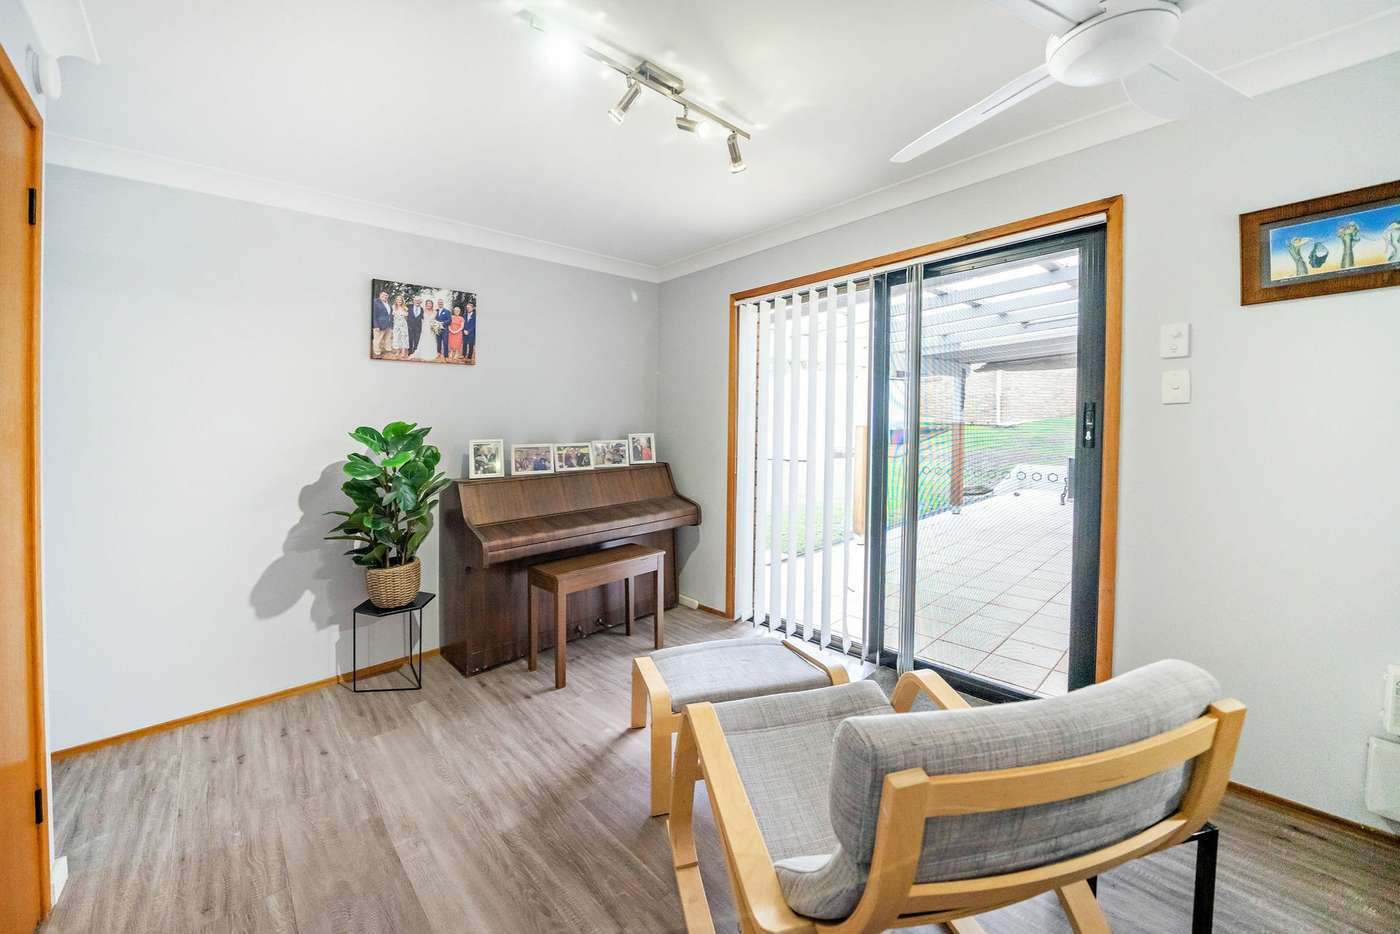 Fifth view of Homely house listing, 7 Talawong Drive, Taree NSW 2430